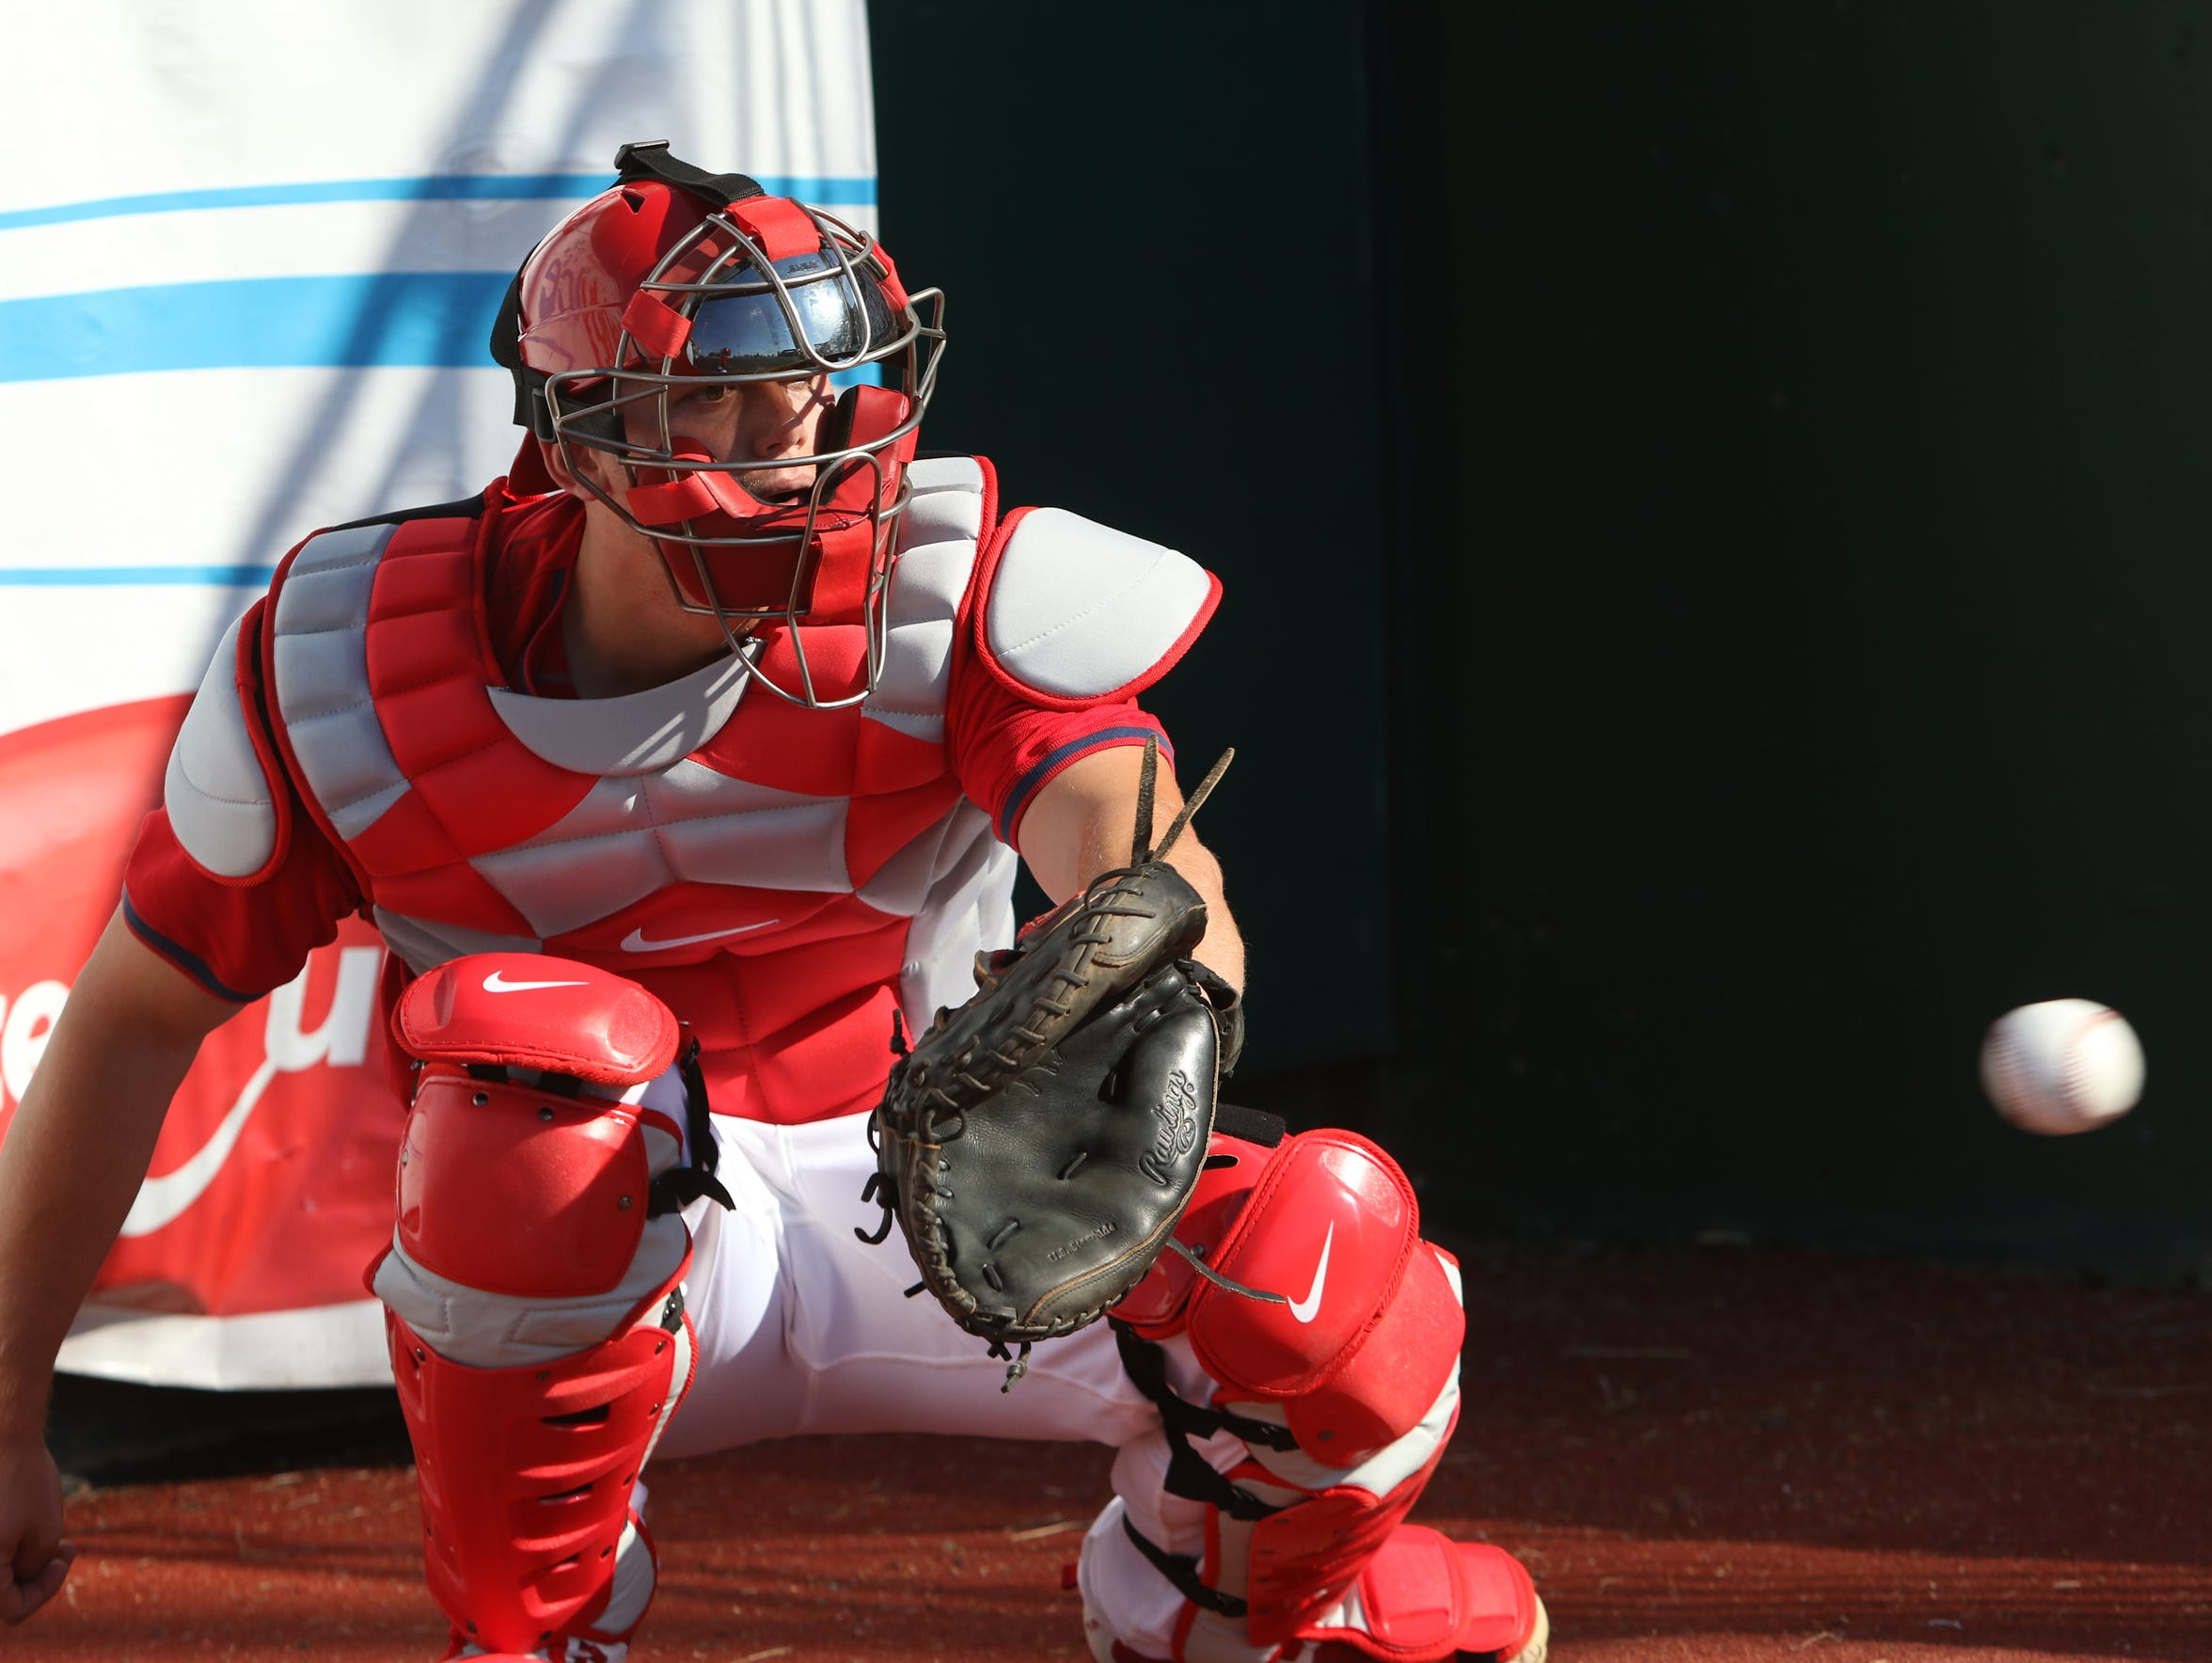 Carson Kelly has turned into a hot prospect at catcher,